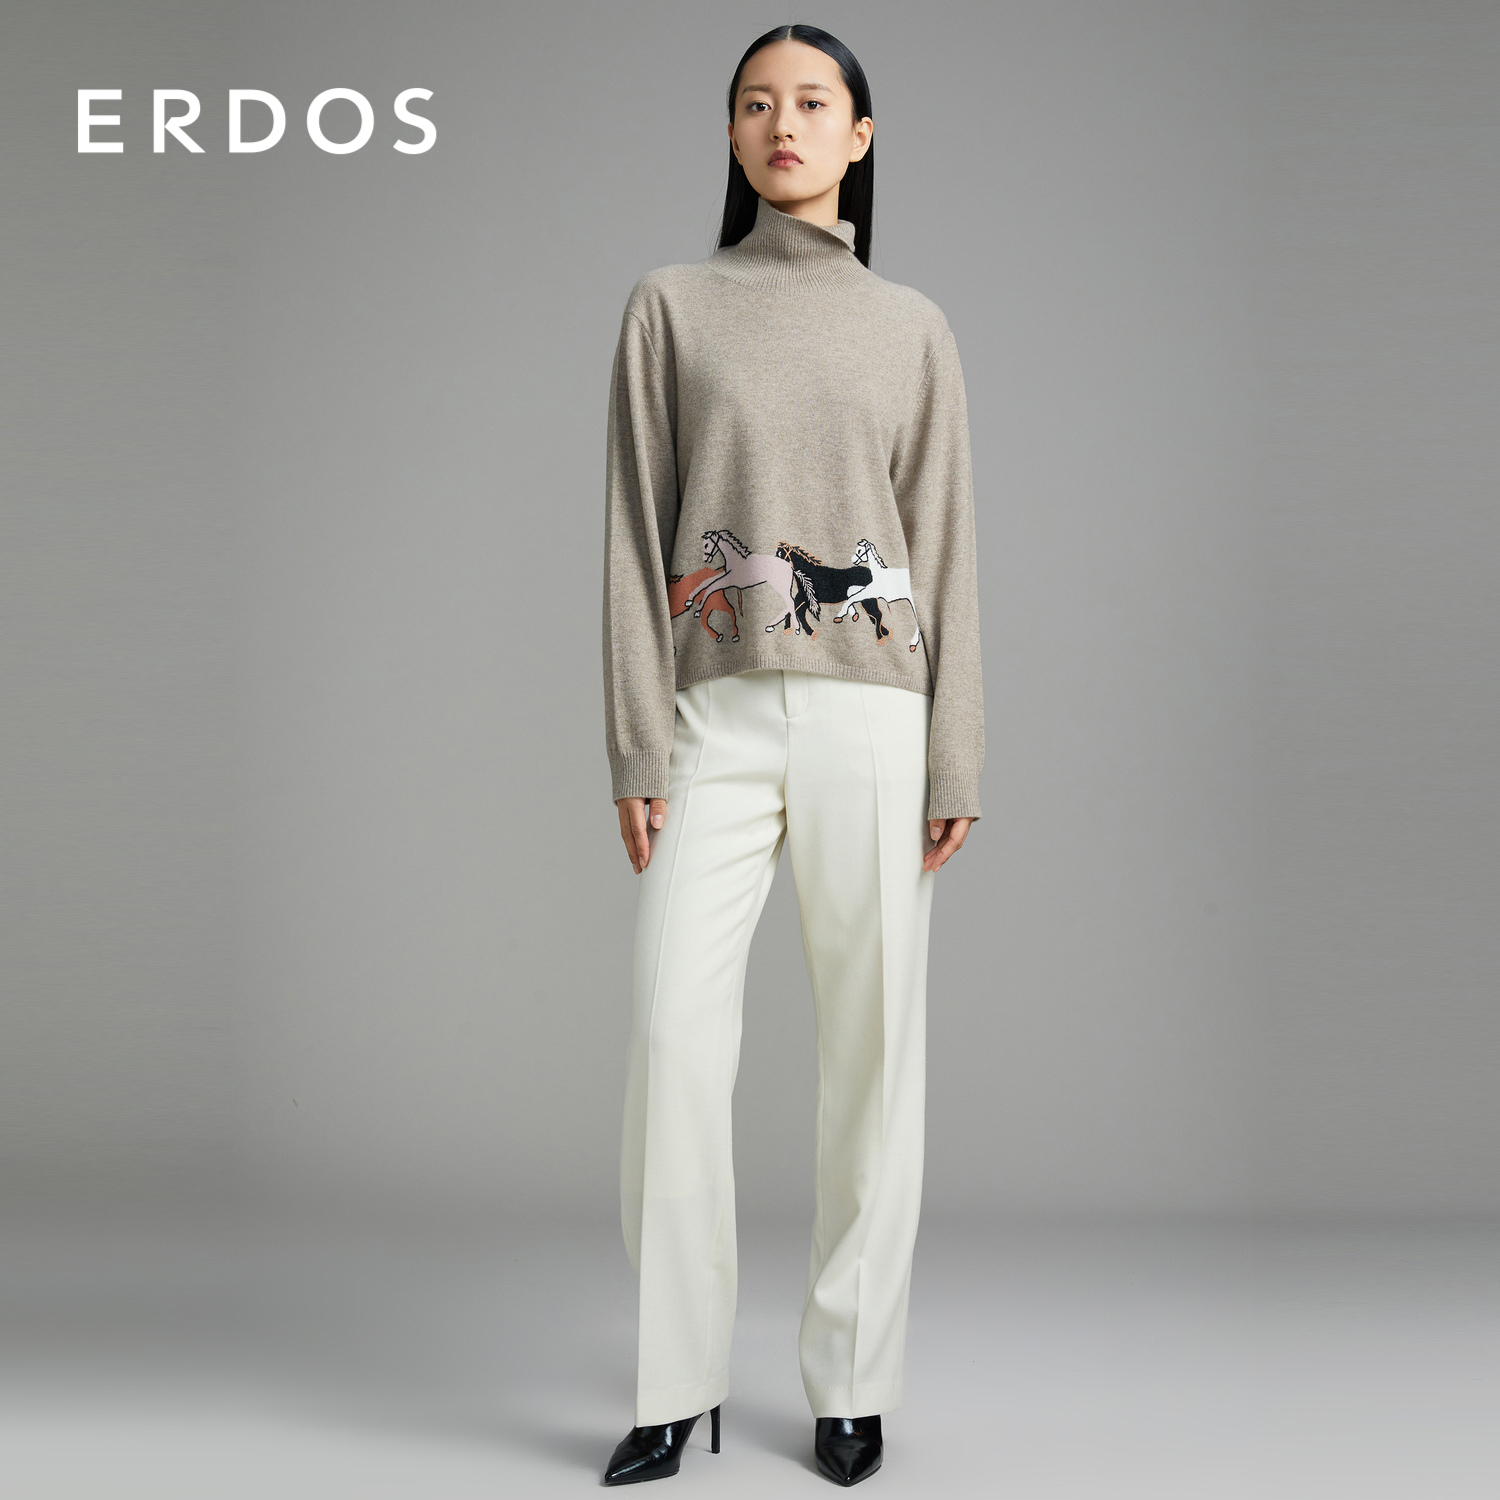 ERDOS 20 autumn winter new high-necked horse decorative garnish women cashmere sweater